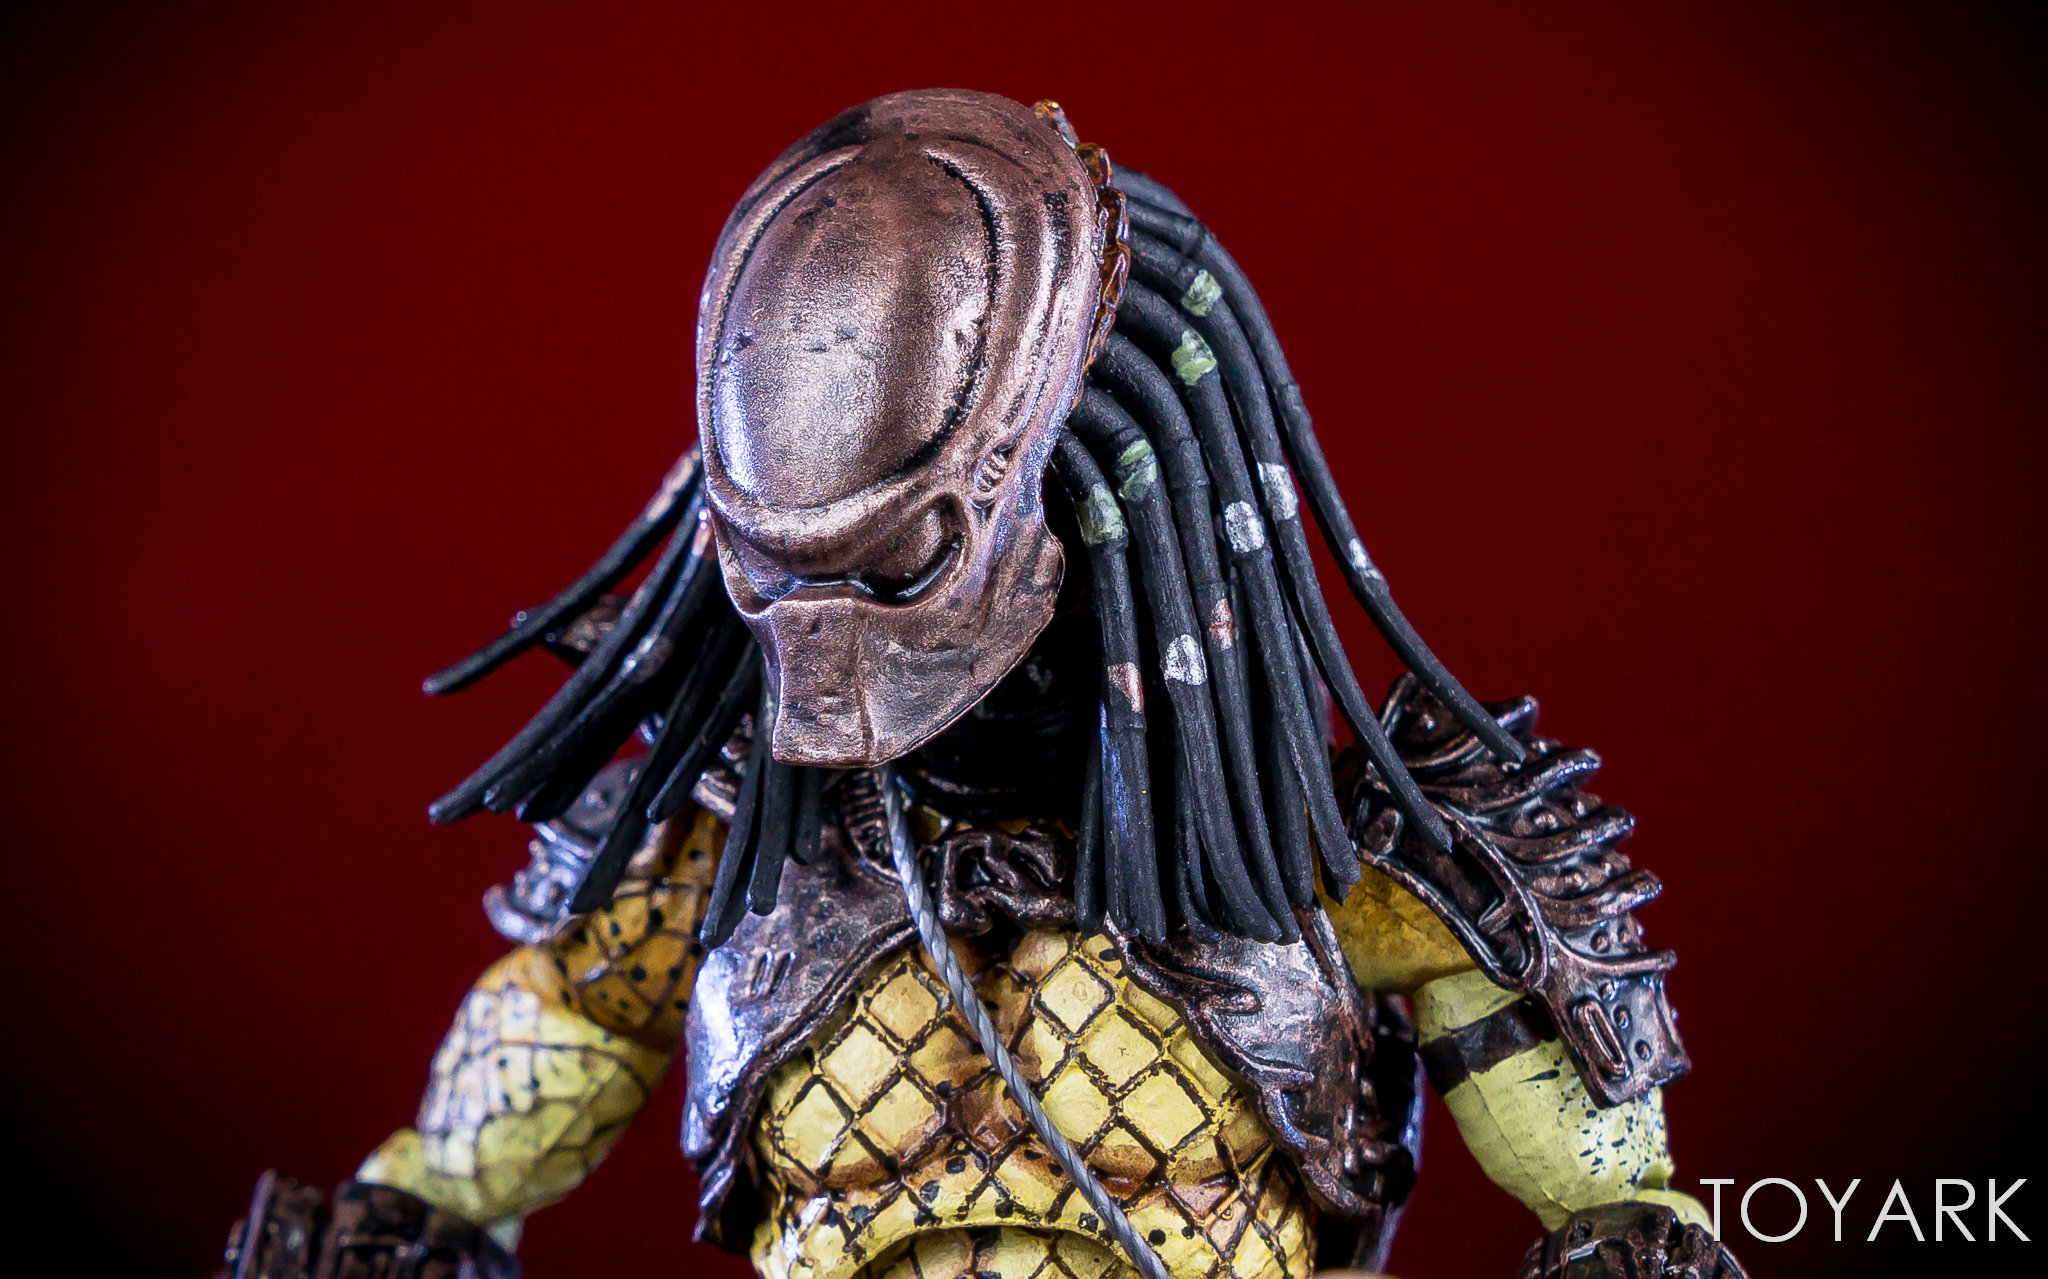 http://news.toyark.com/wp-content/uploads/sites/4/2018/03/Hiya-Predator-2-Figures-017.jpg